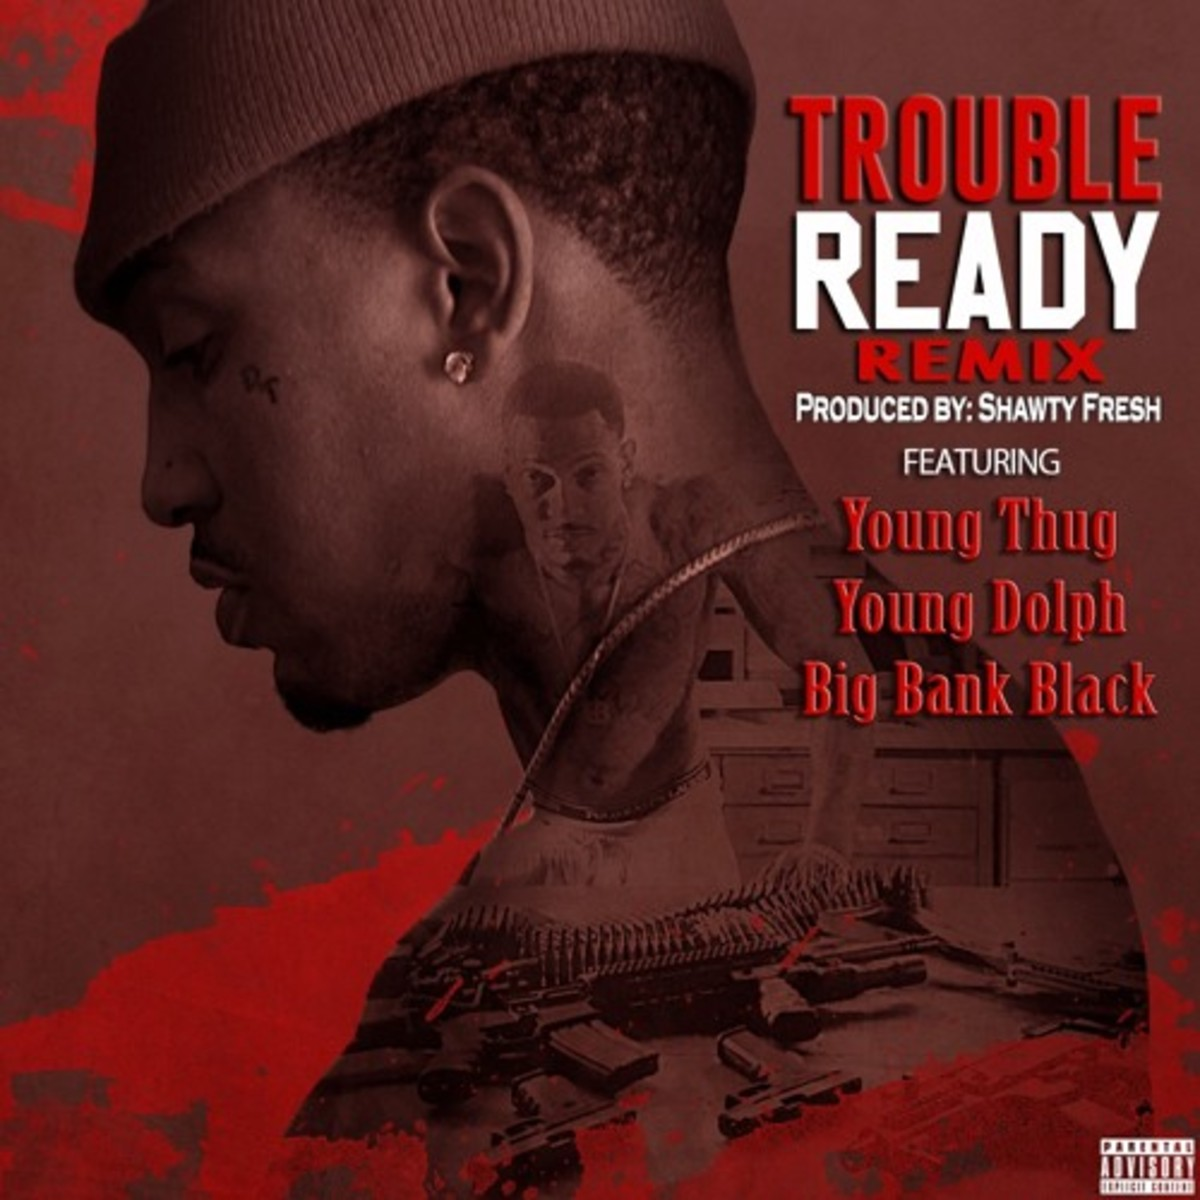 trouble-ready-remix.jpg